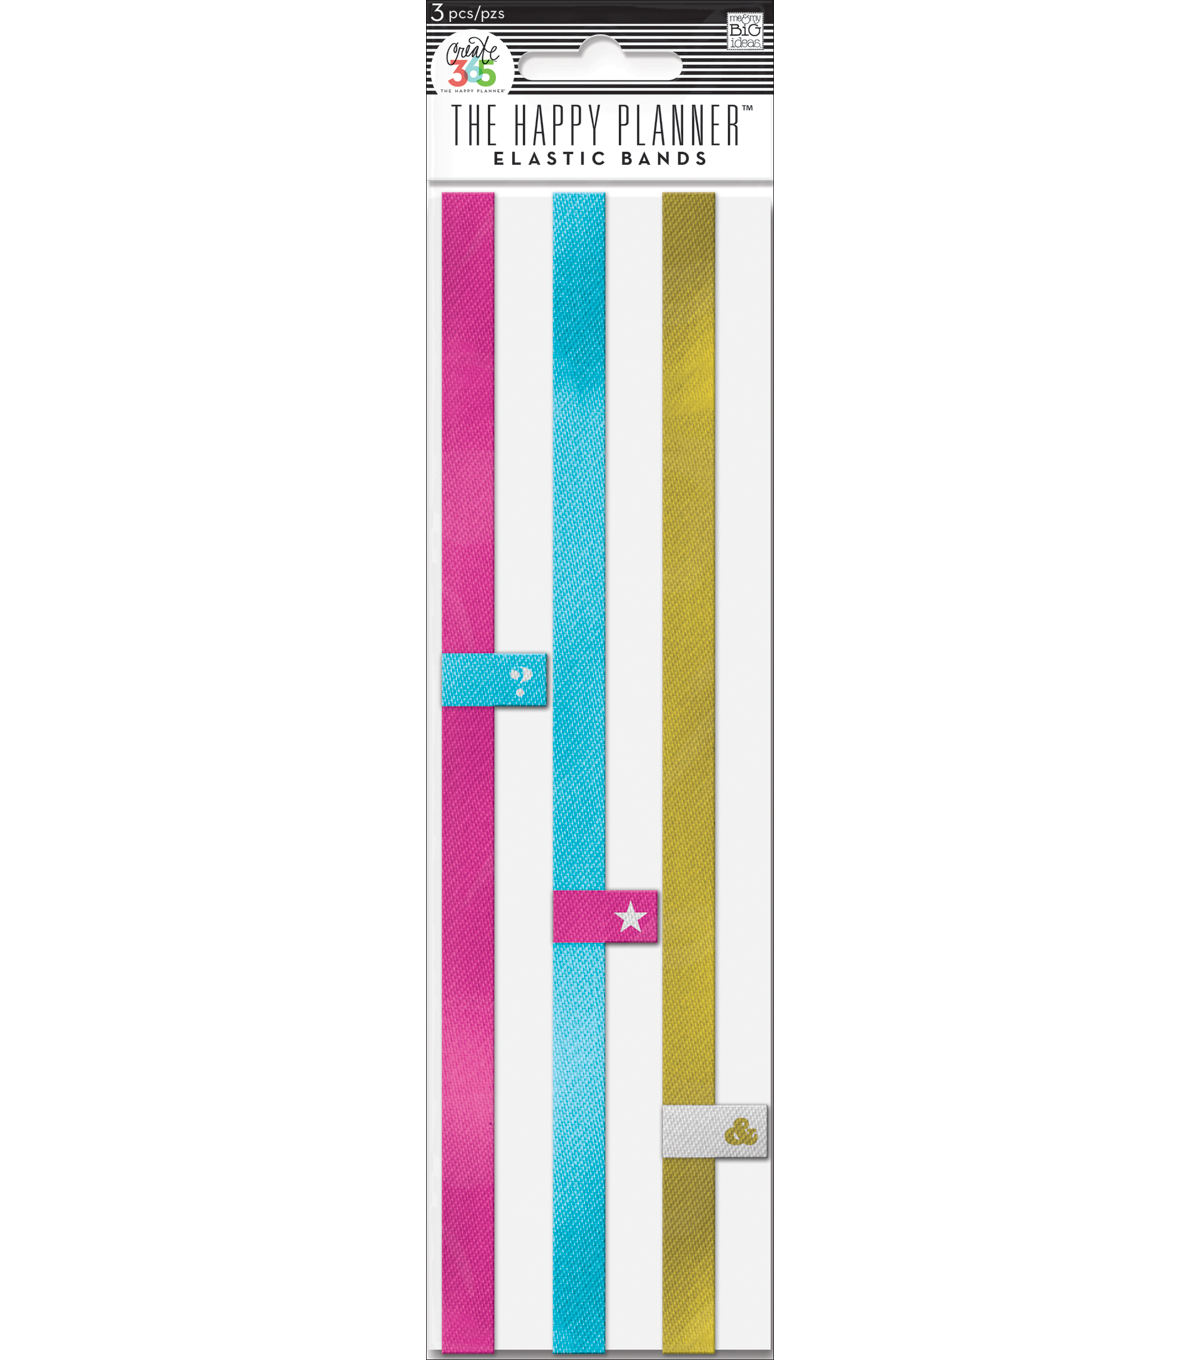 The Happy Planner 3 Pack Elastic Bands-Pink,Teal & Gold